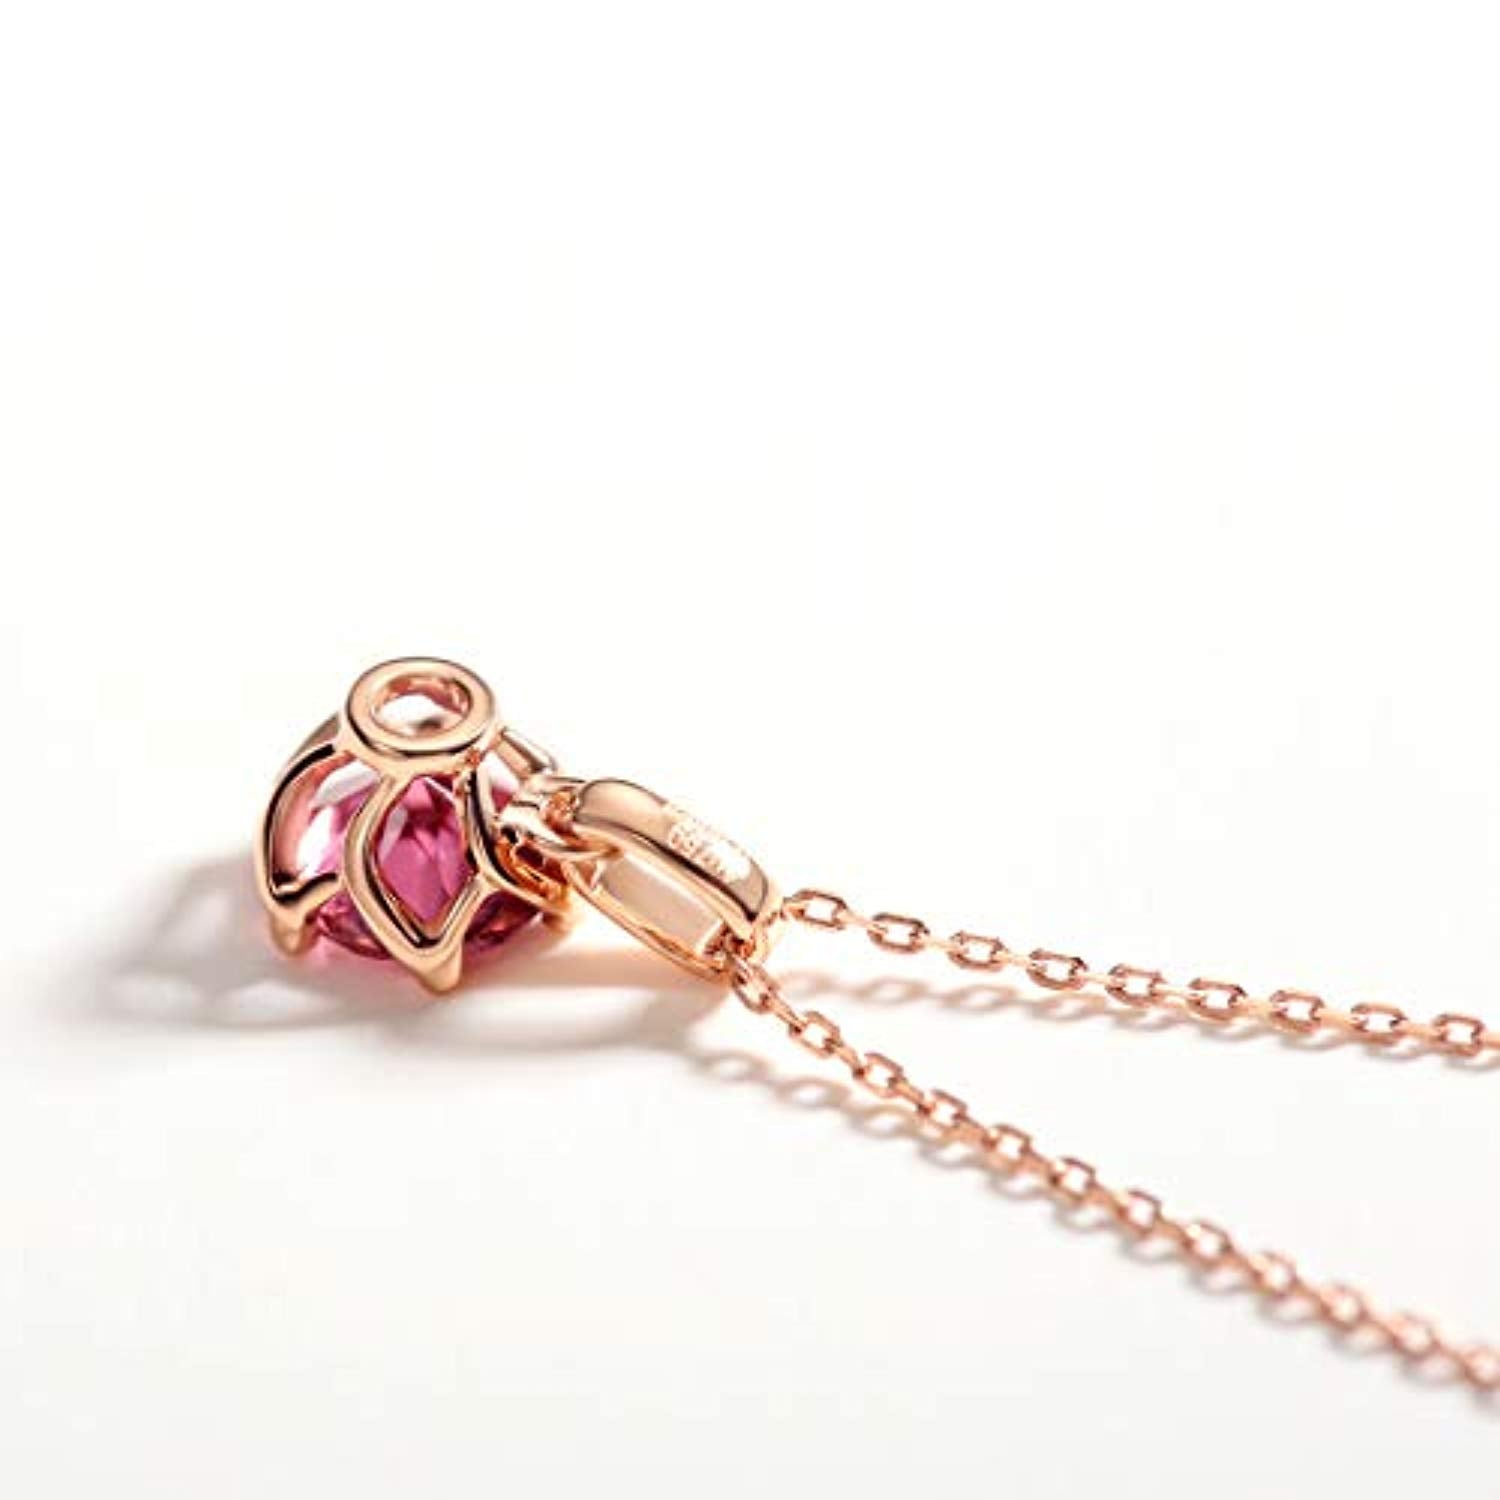 14K Solid Rose Gold Genuine Natural Pink Tourmaline Solitaire Pendant Necklace October Birthstone Gemstone Fine Jewelry